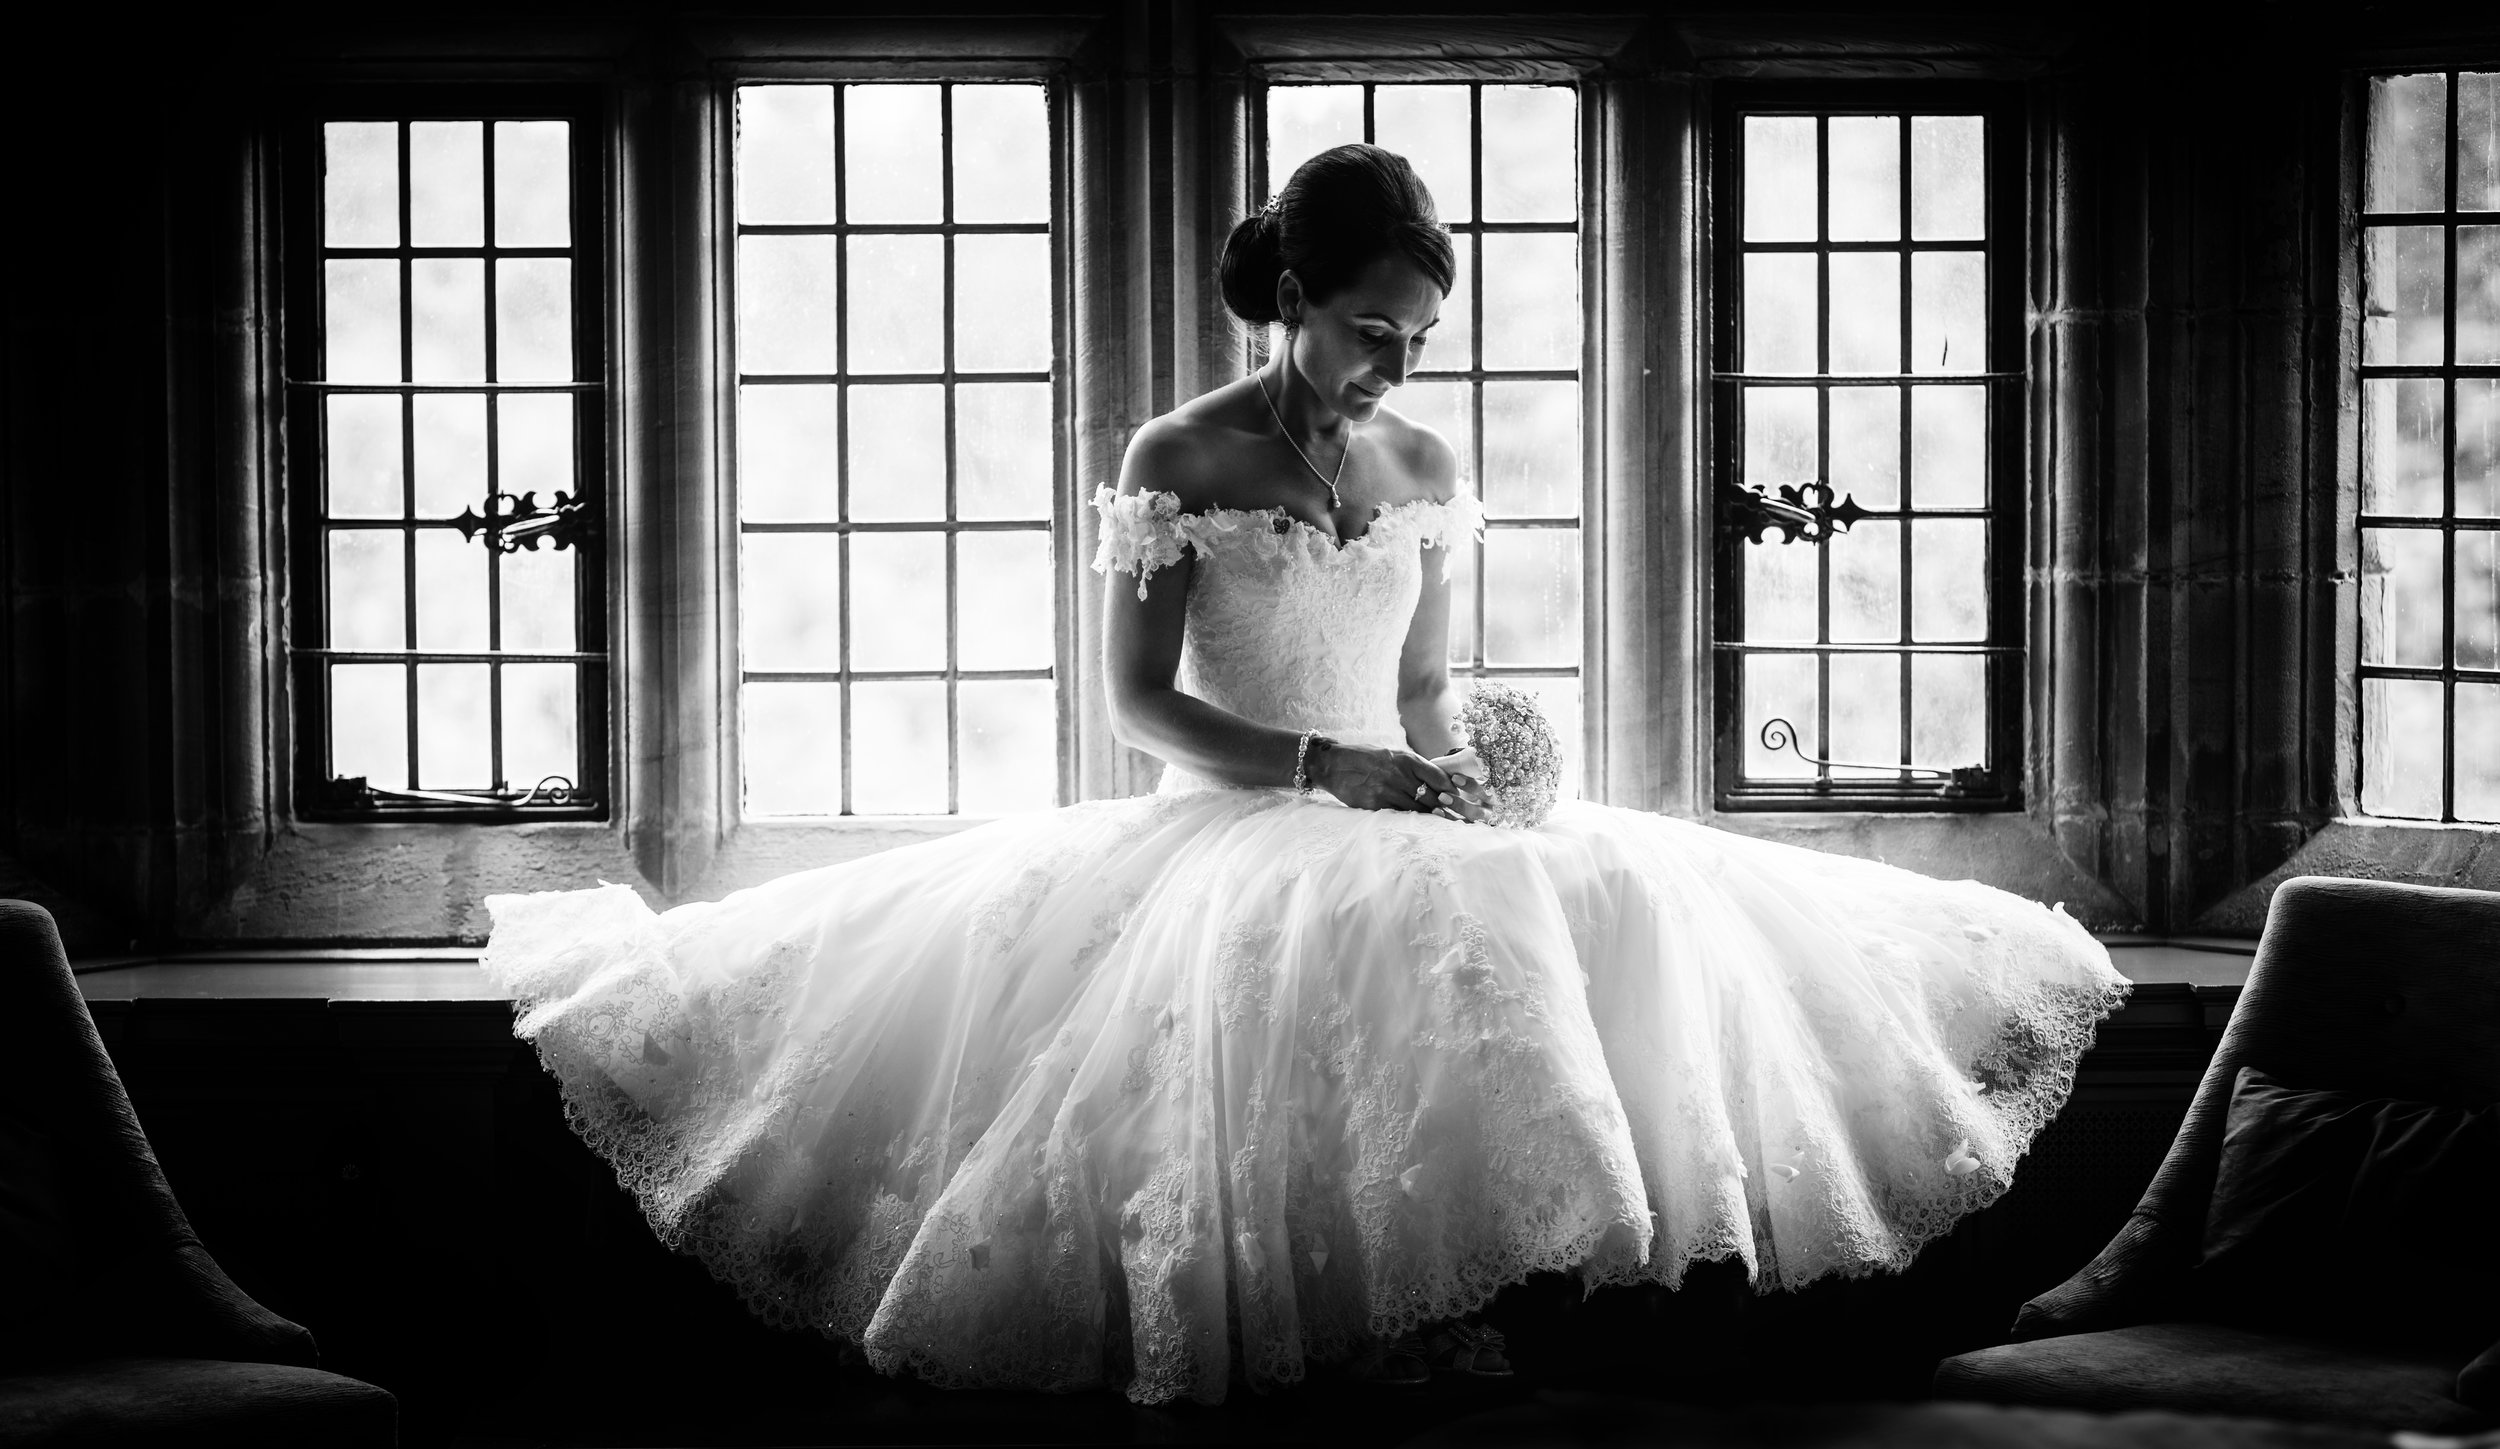 Black and White portrait of a bride sitting in a window seat